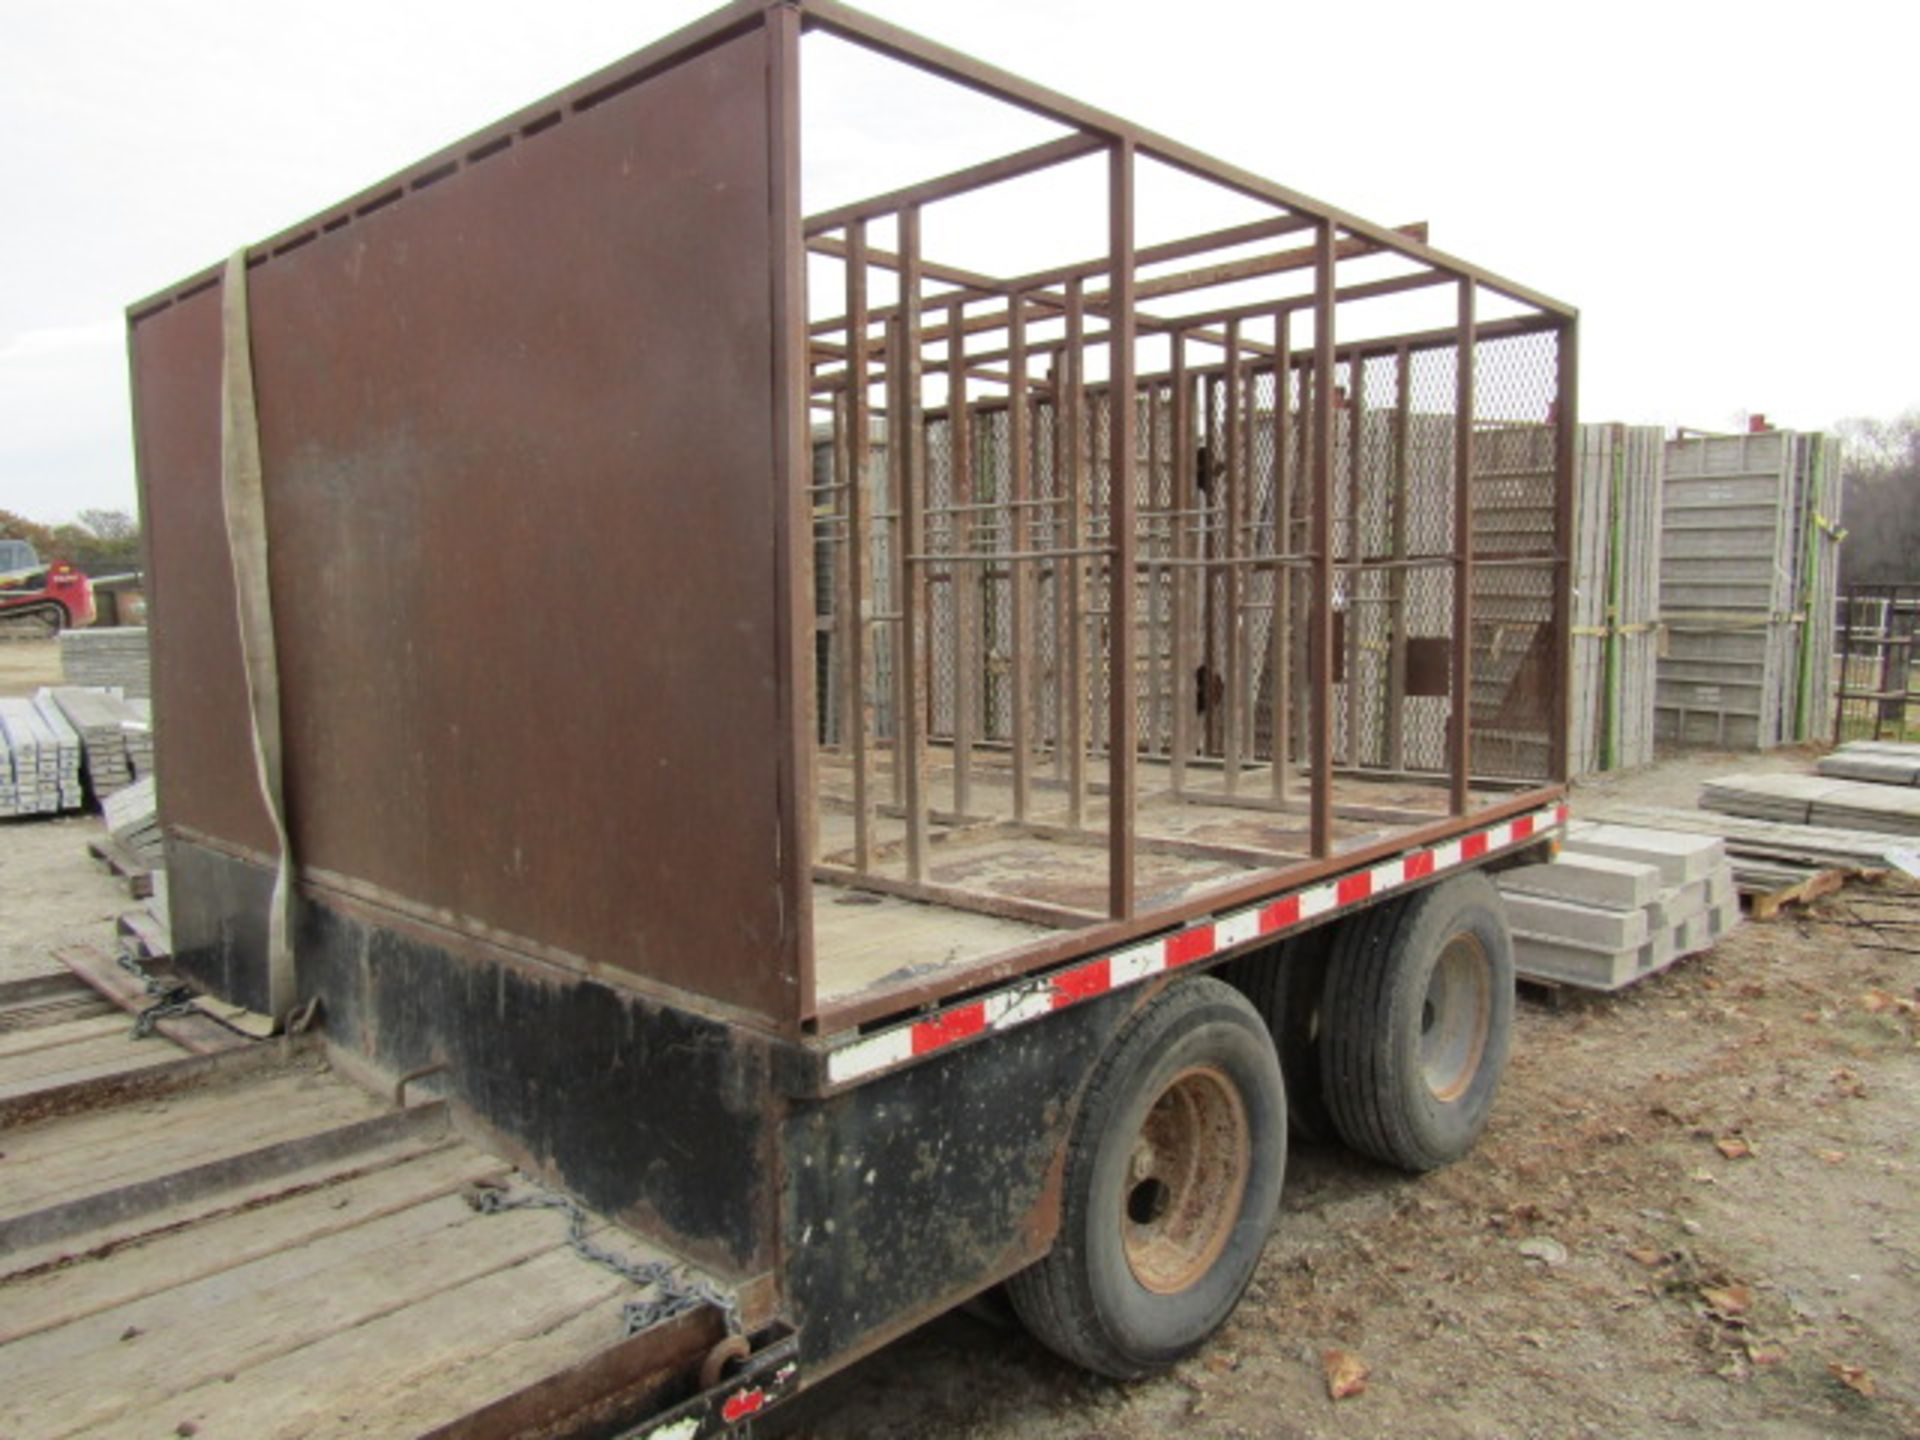 "Lot 212 - 2004 B-B Gooseneck Trailer, Tandem Axle, 18' 8"" x 9' 6"" Well, 8' 7"" Top Deck, Located in"